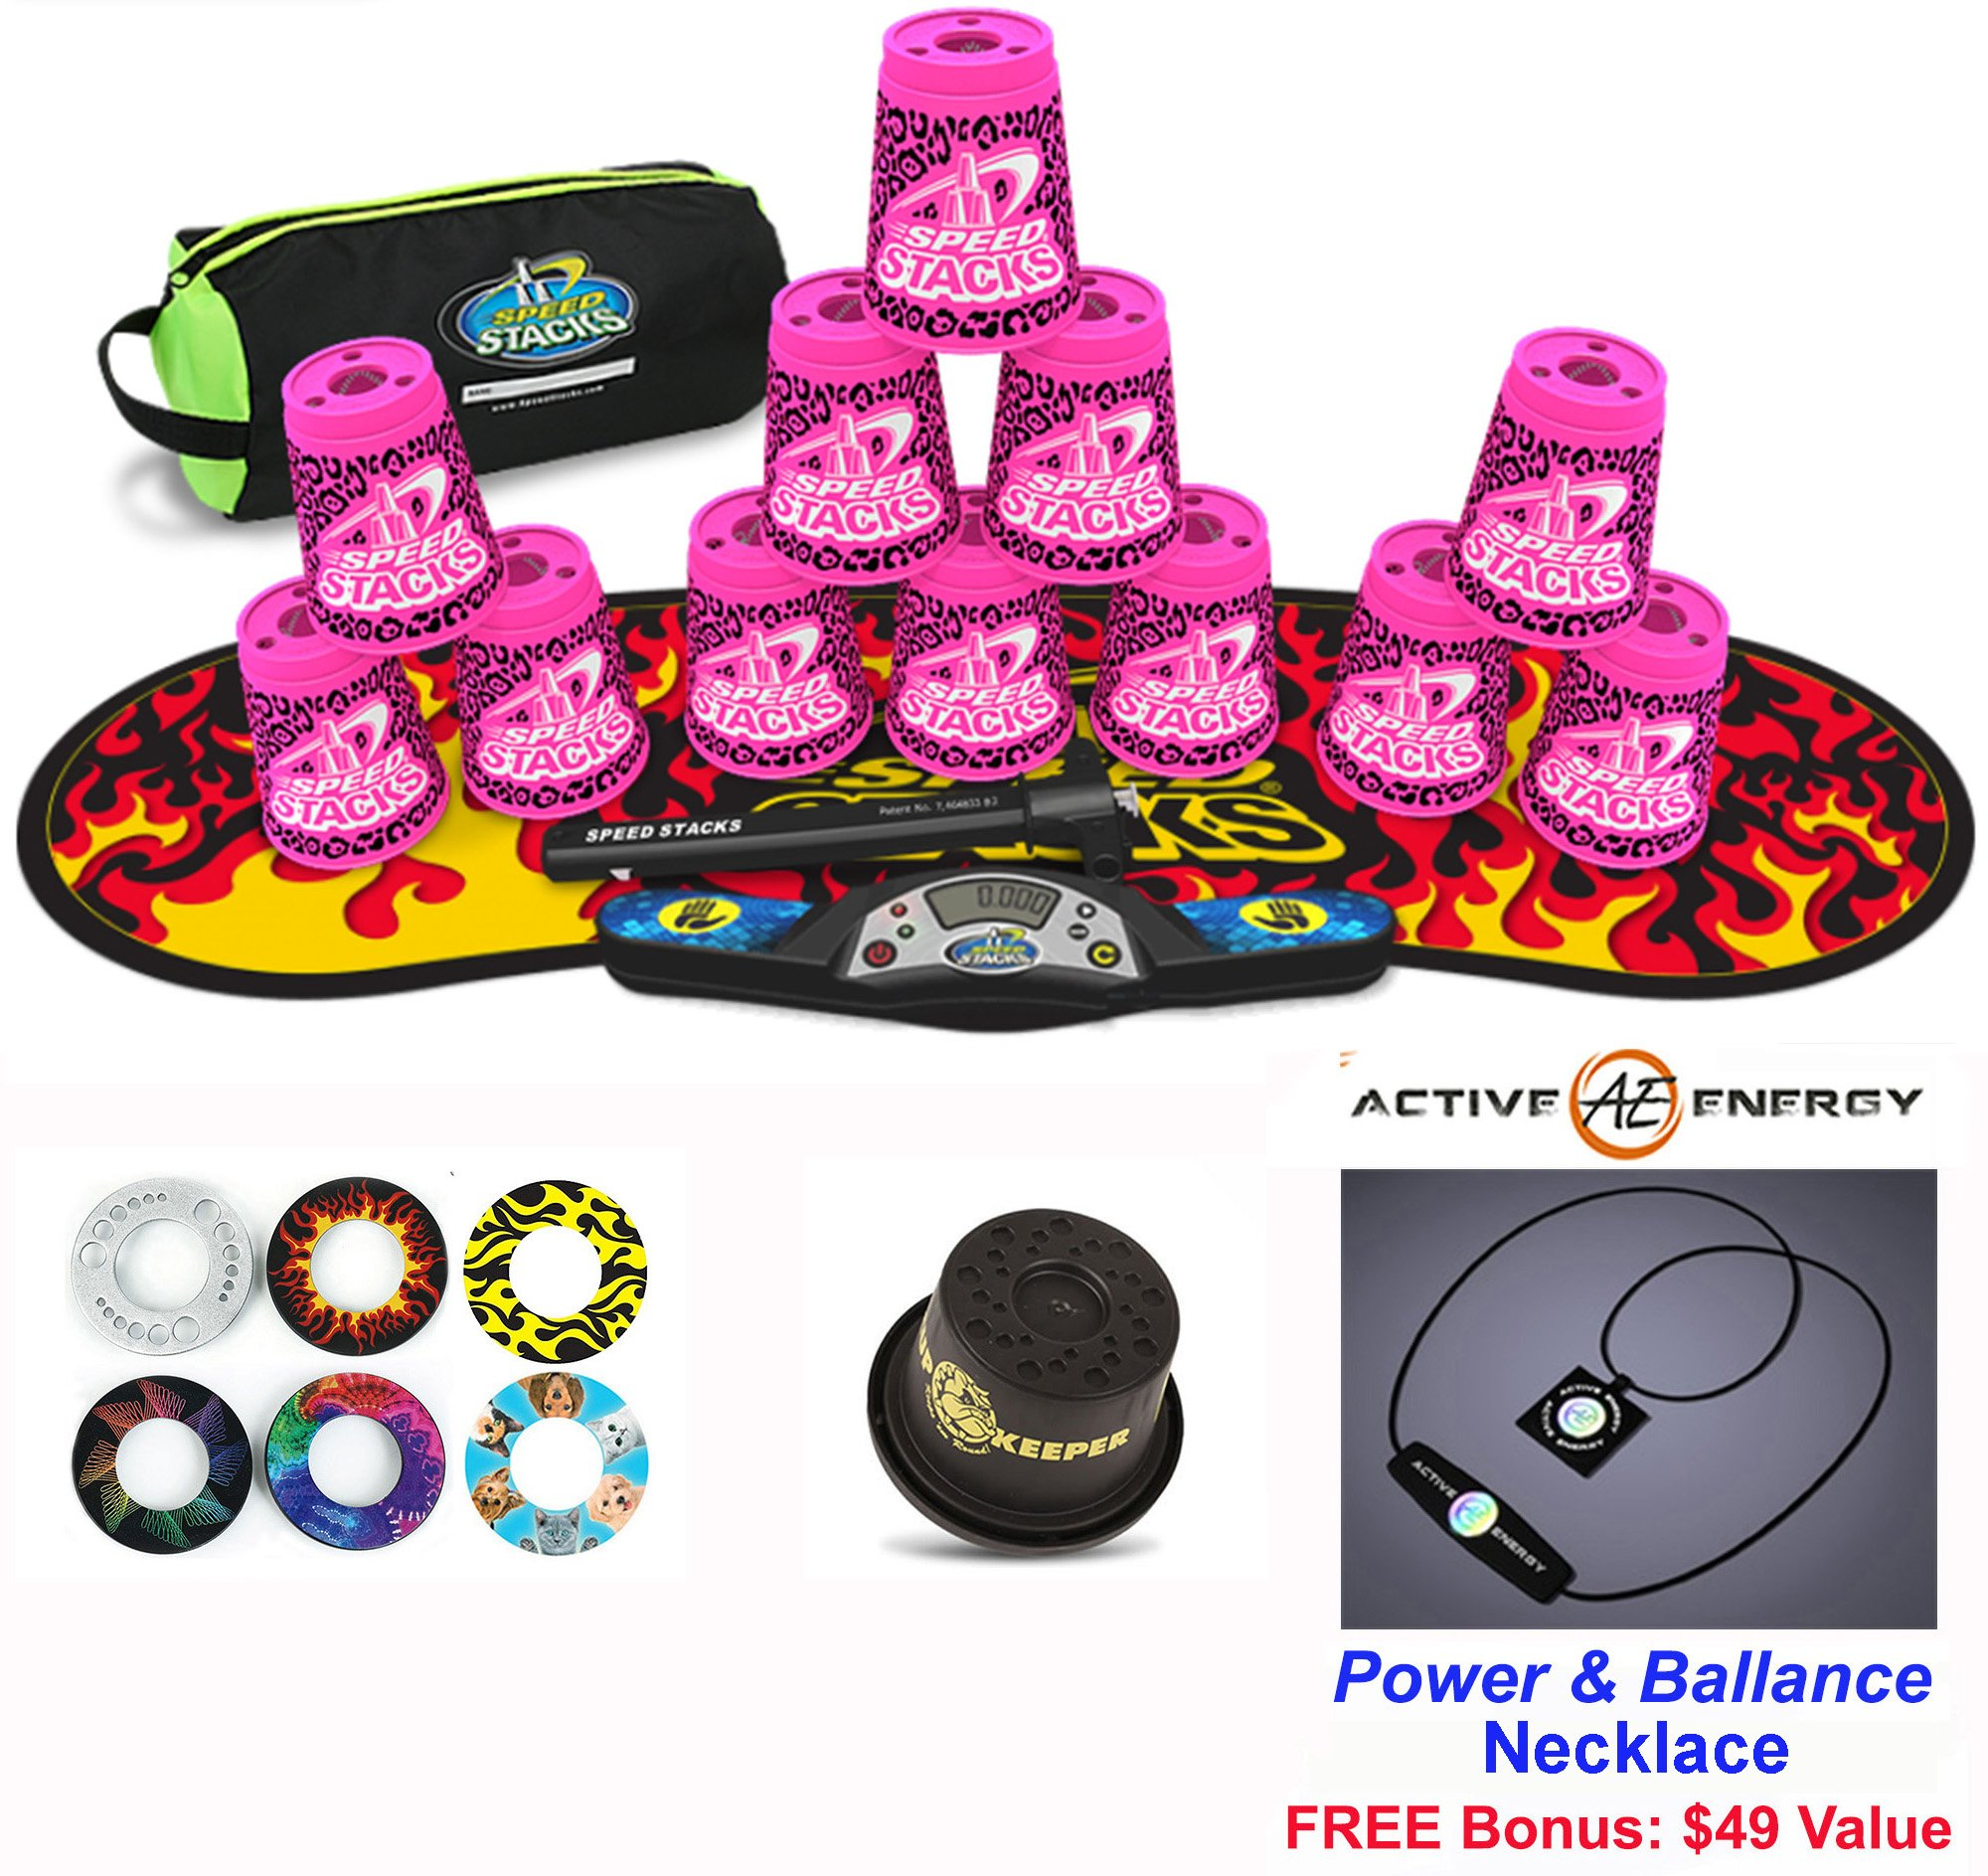 Speed Stacks Combo Set 'The Works'': 12 ZIPPY LEOPARD 4'' Cups, Black Flame Gen 3 Mat, G4 Pro Timer, Cup Keeper, Stem, Gear Bag + Active Energy Necklace